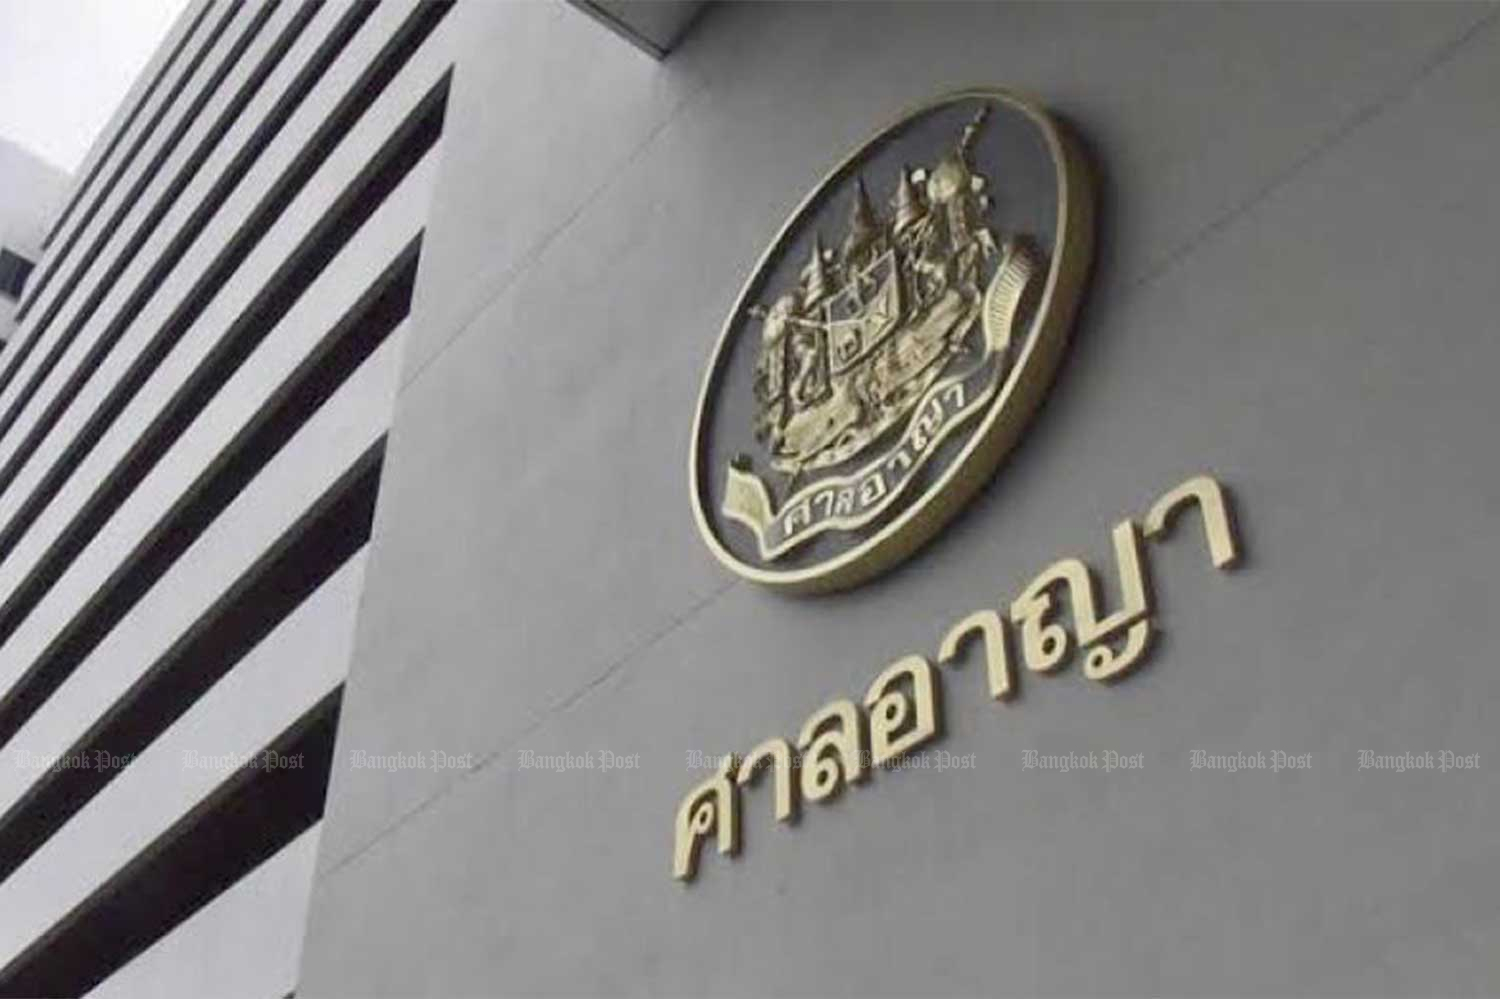 The Criminal Court has sentenced a 30-year-old man to life imprisonment for raping his 8-year-old daughter with use of force and threats. (File photo)